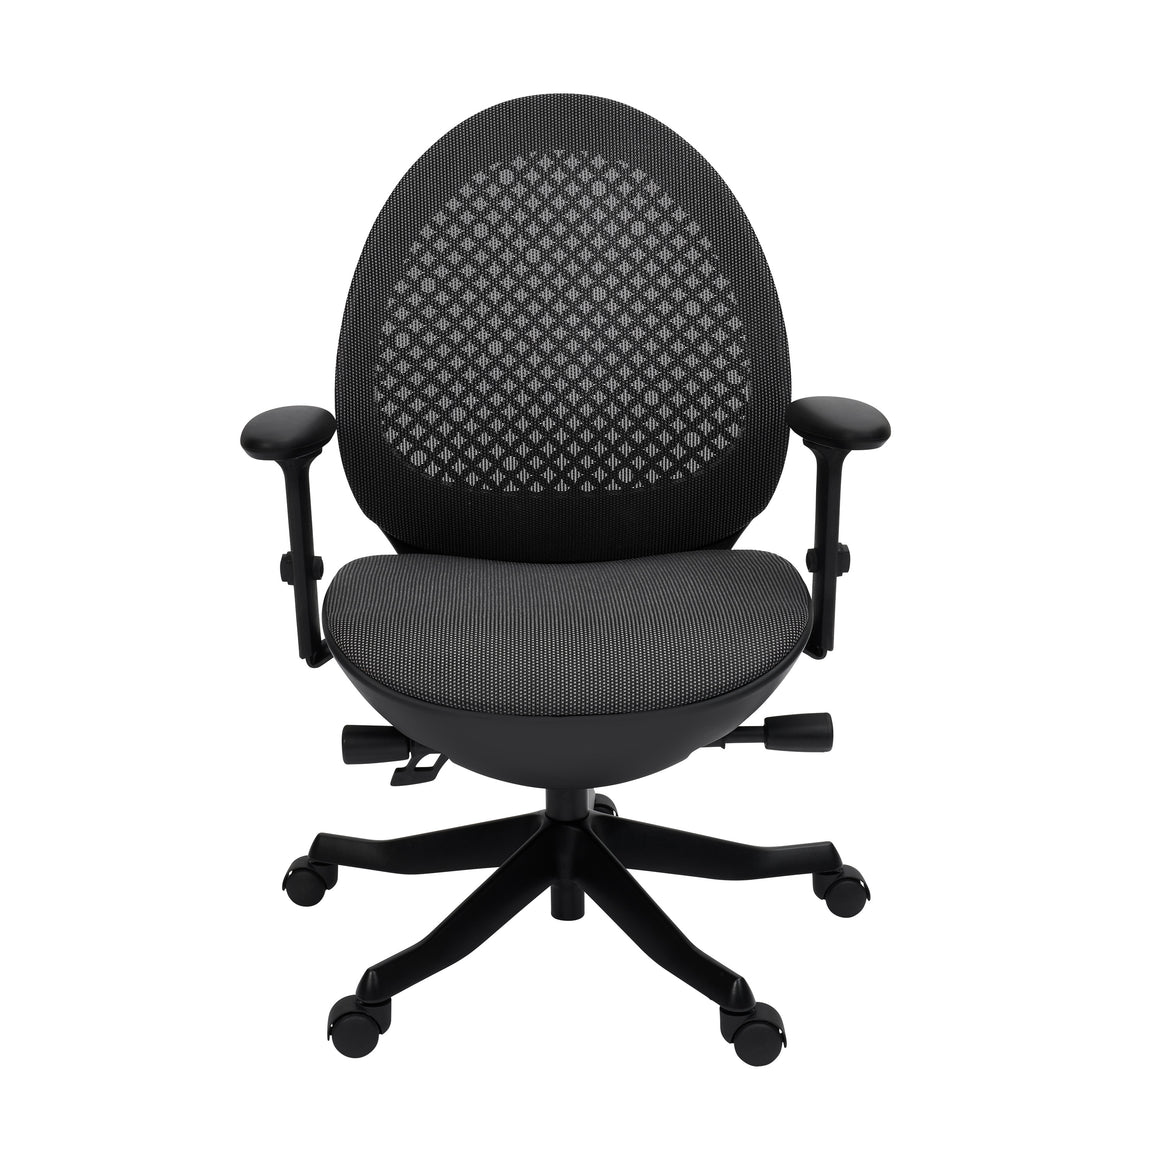 Deco LUX Executive Office Chair